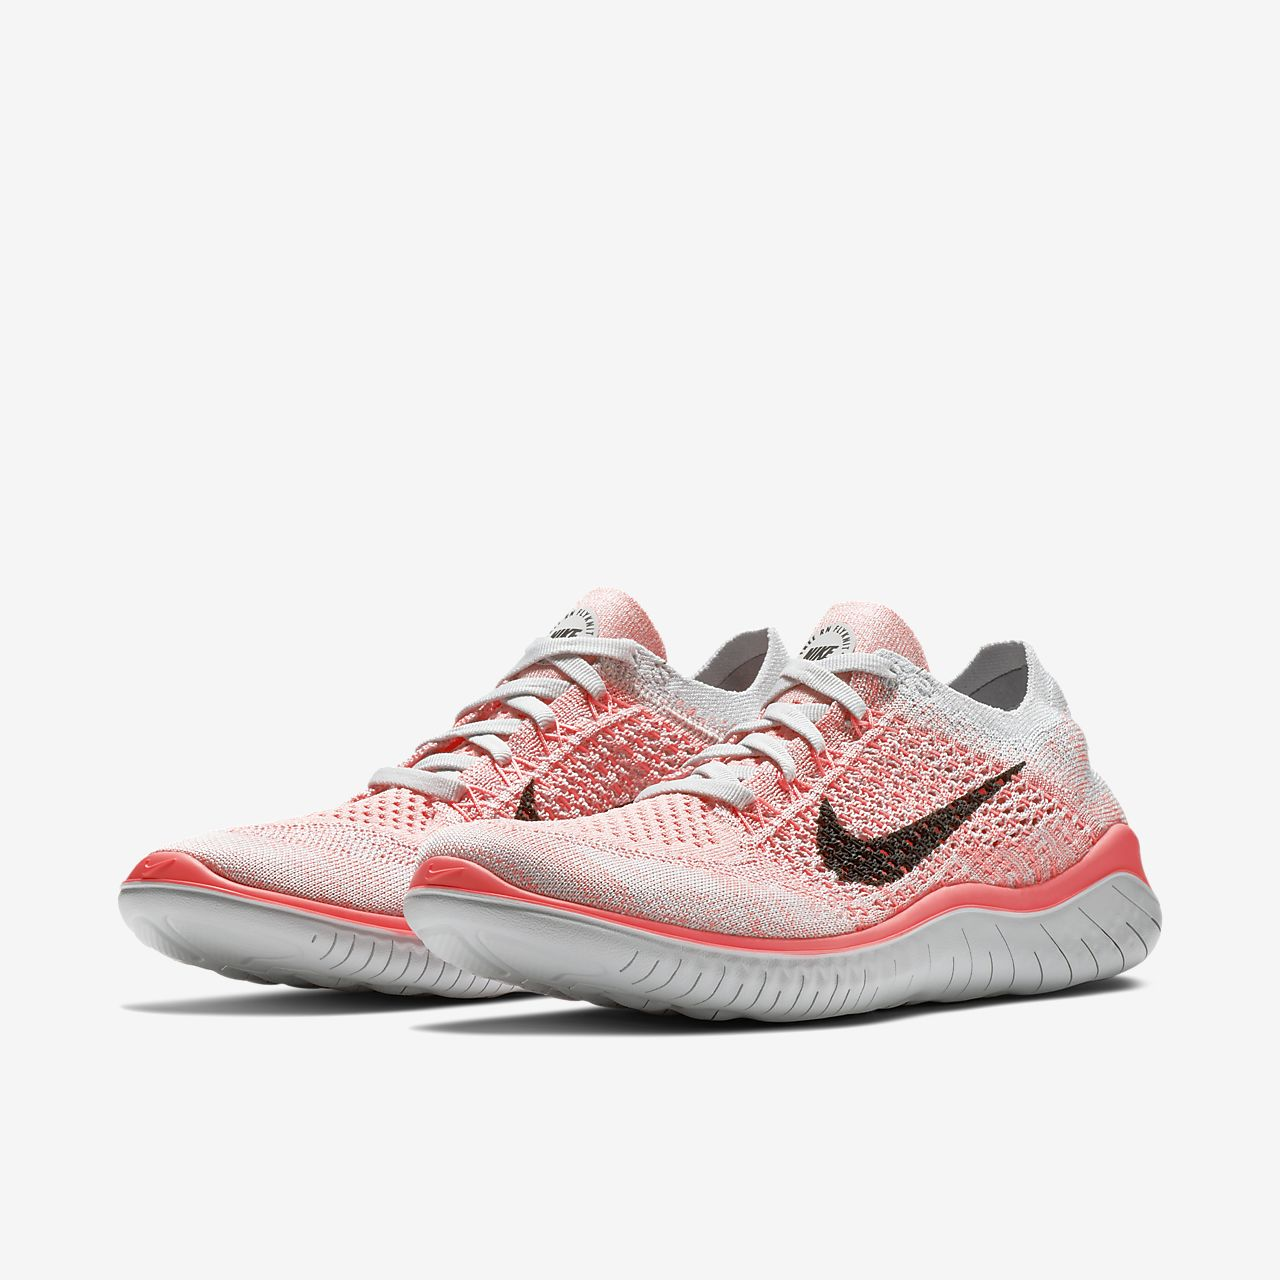 info for 810d7 7ab0c ... nike free run 2018 donna  Acquista ...